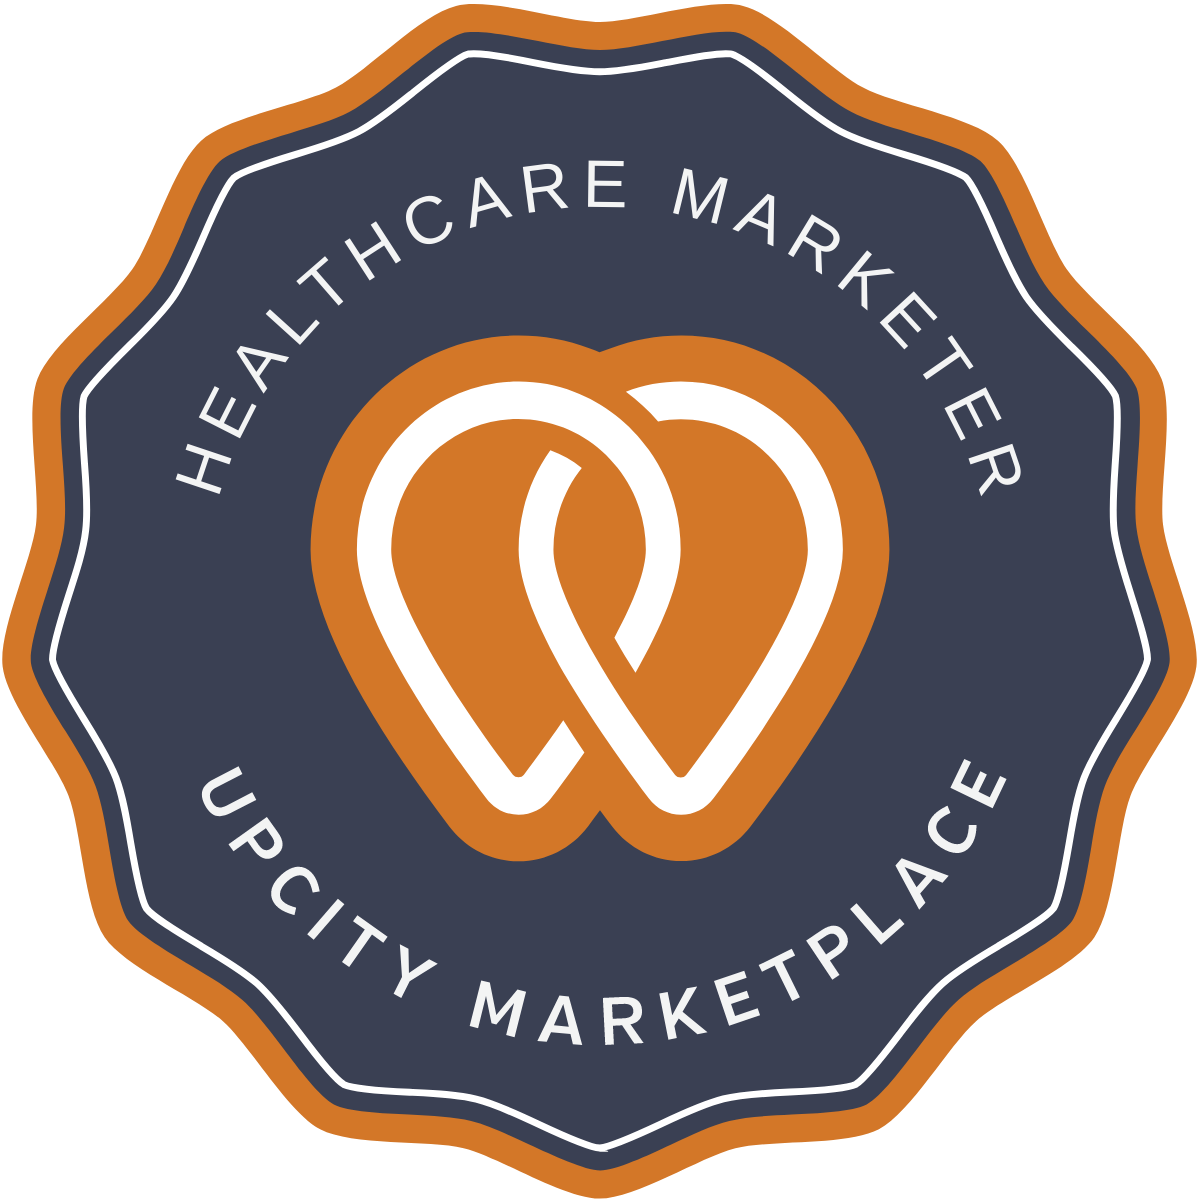 HEALTHCARE MARKETER